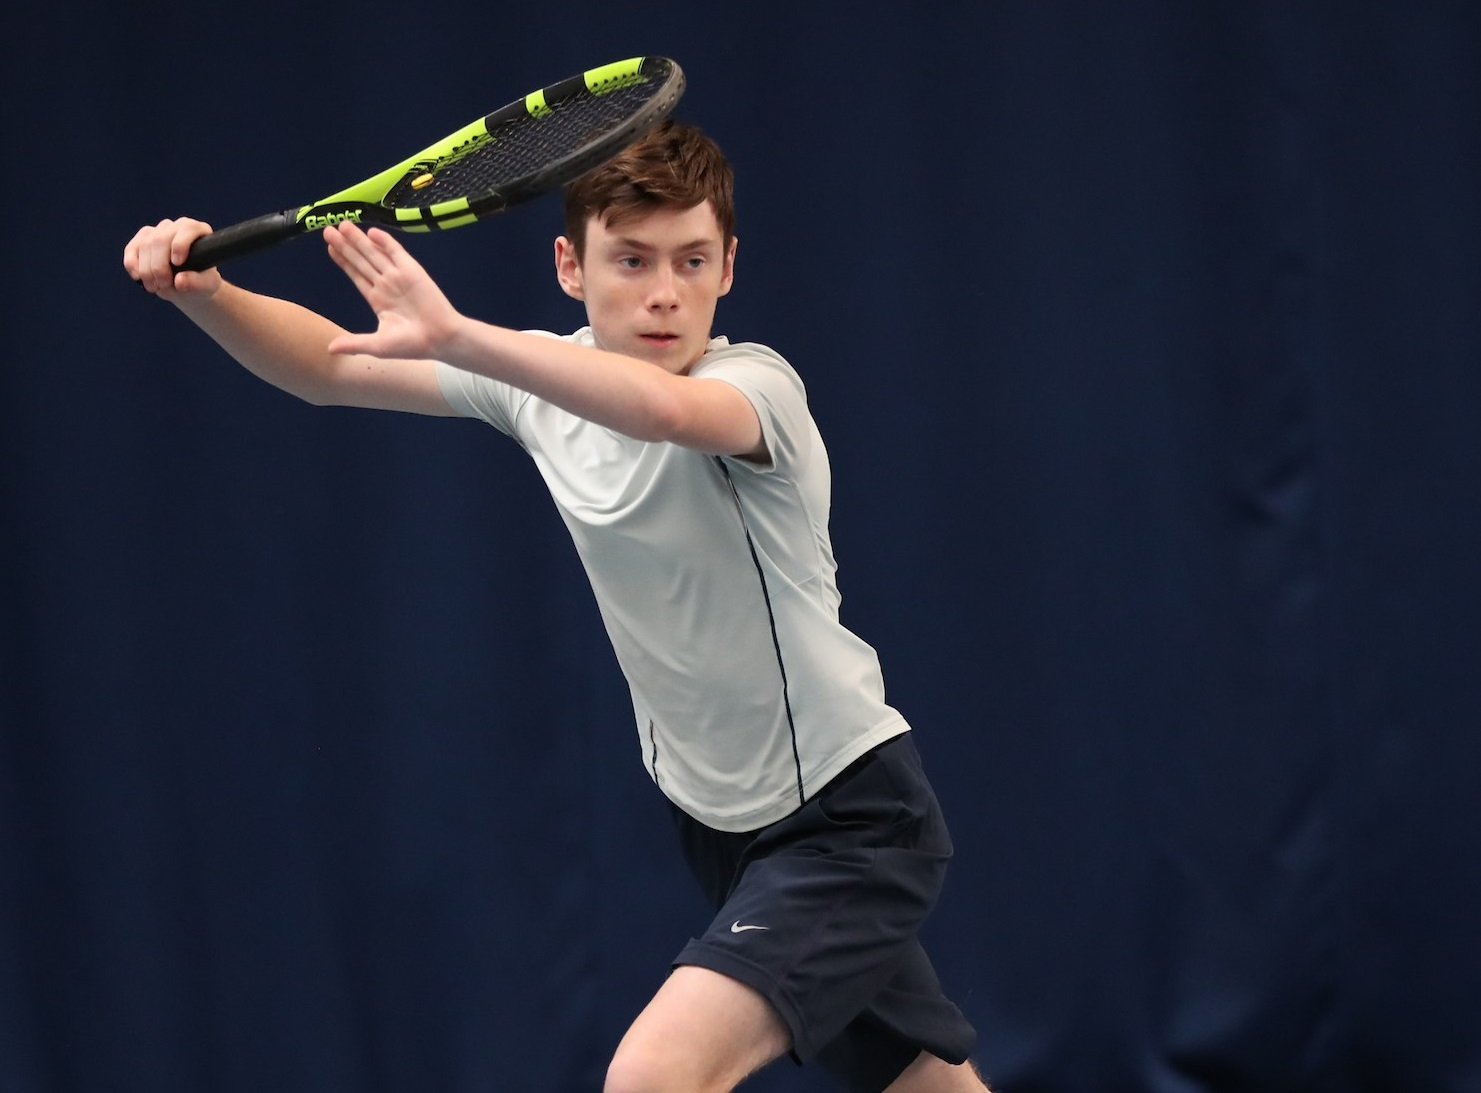 Luke Turnbull is pictured as he is about to hit the ball with his tennis racket